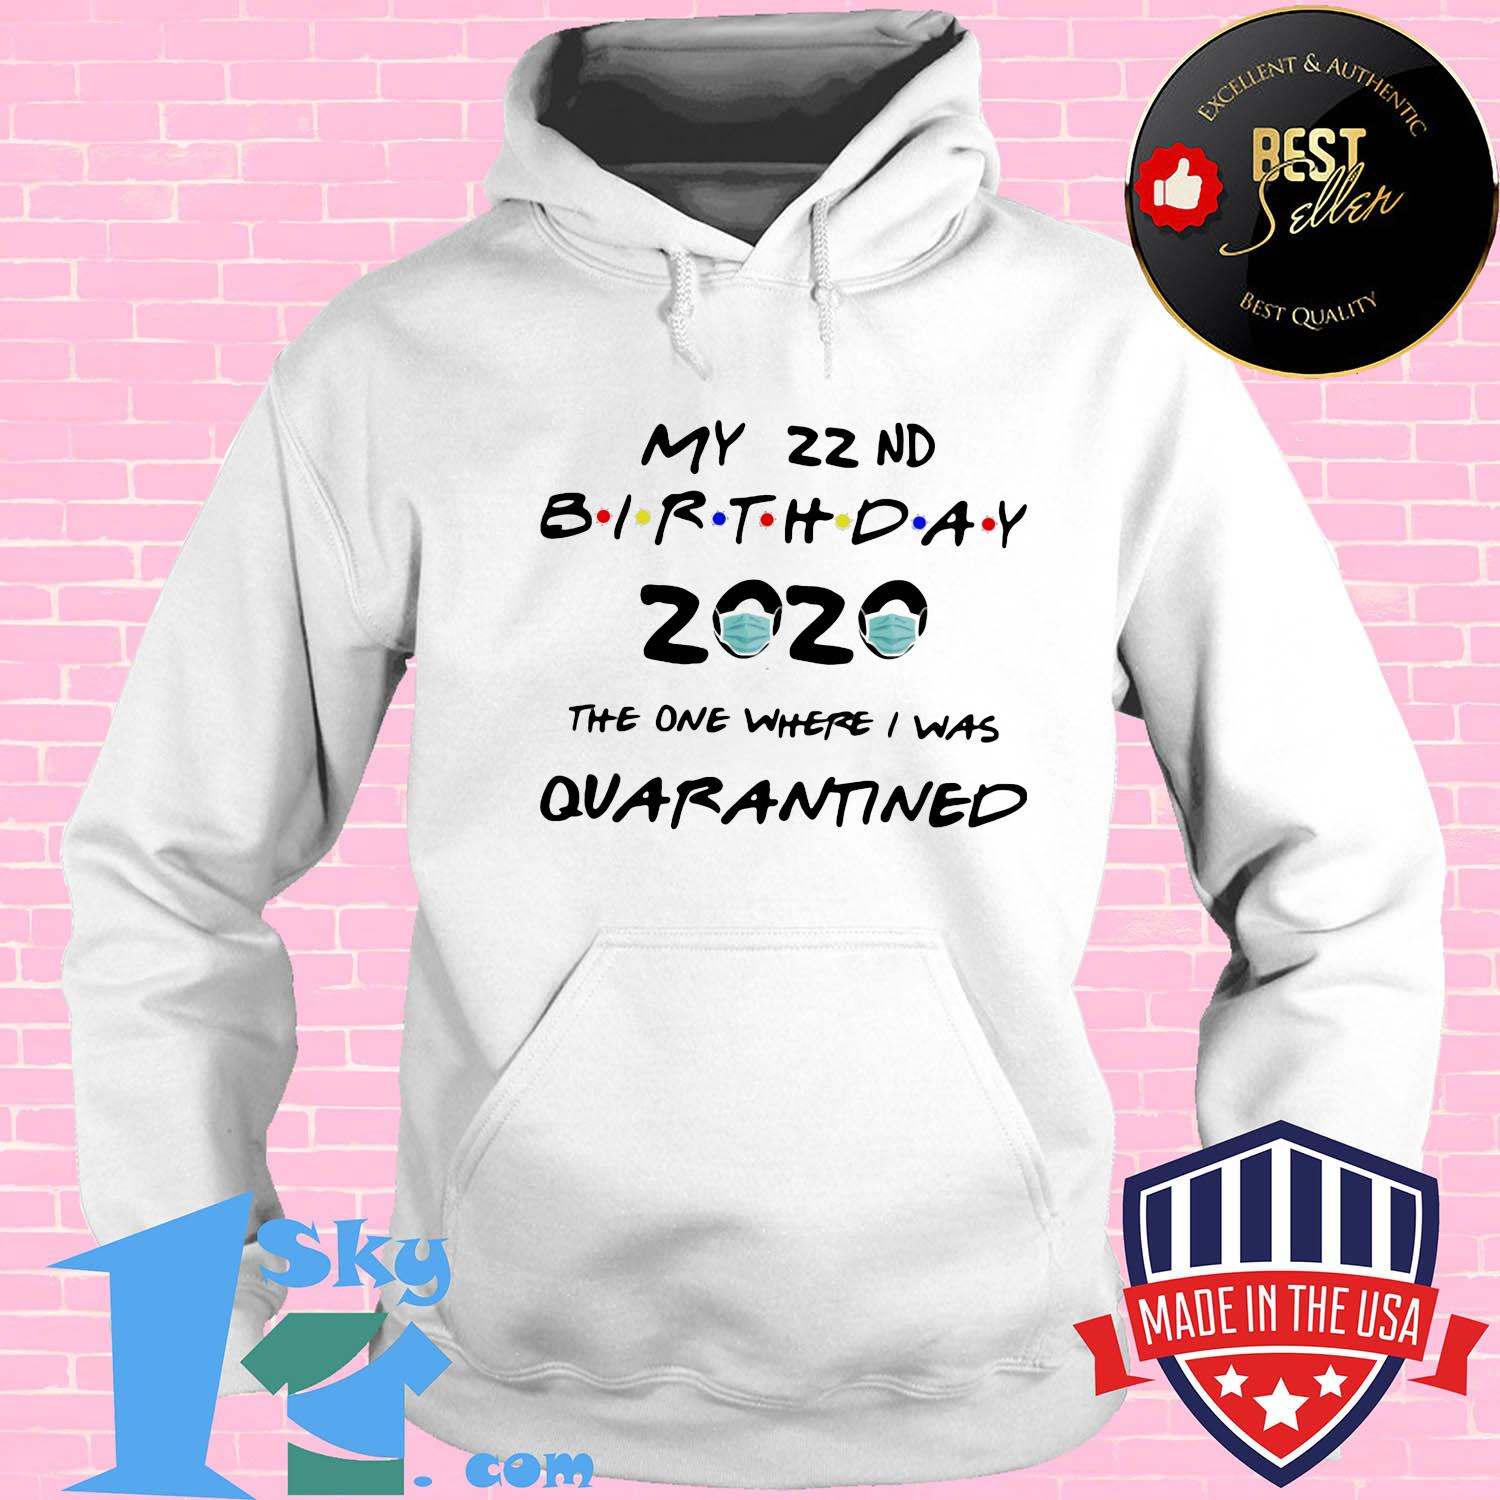 My 22nd birthday 2020 the one where I was quarantined mask shirt